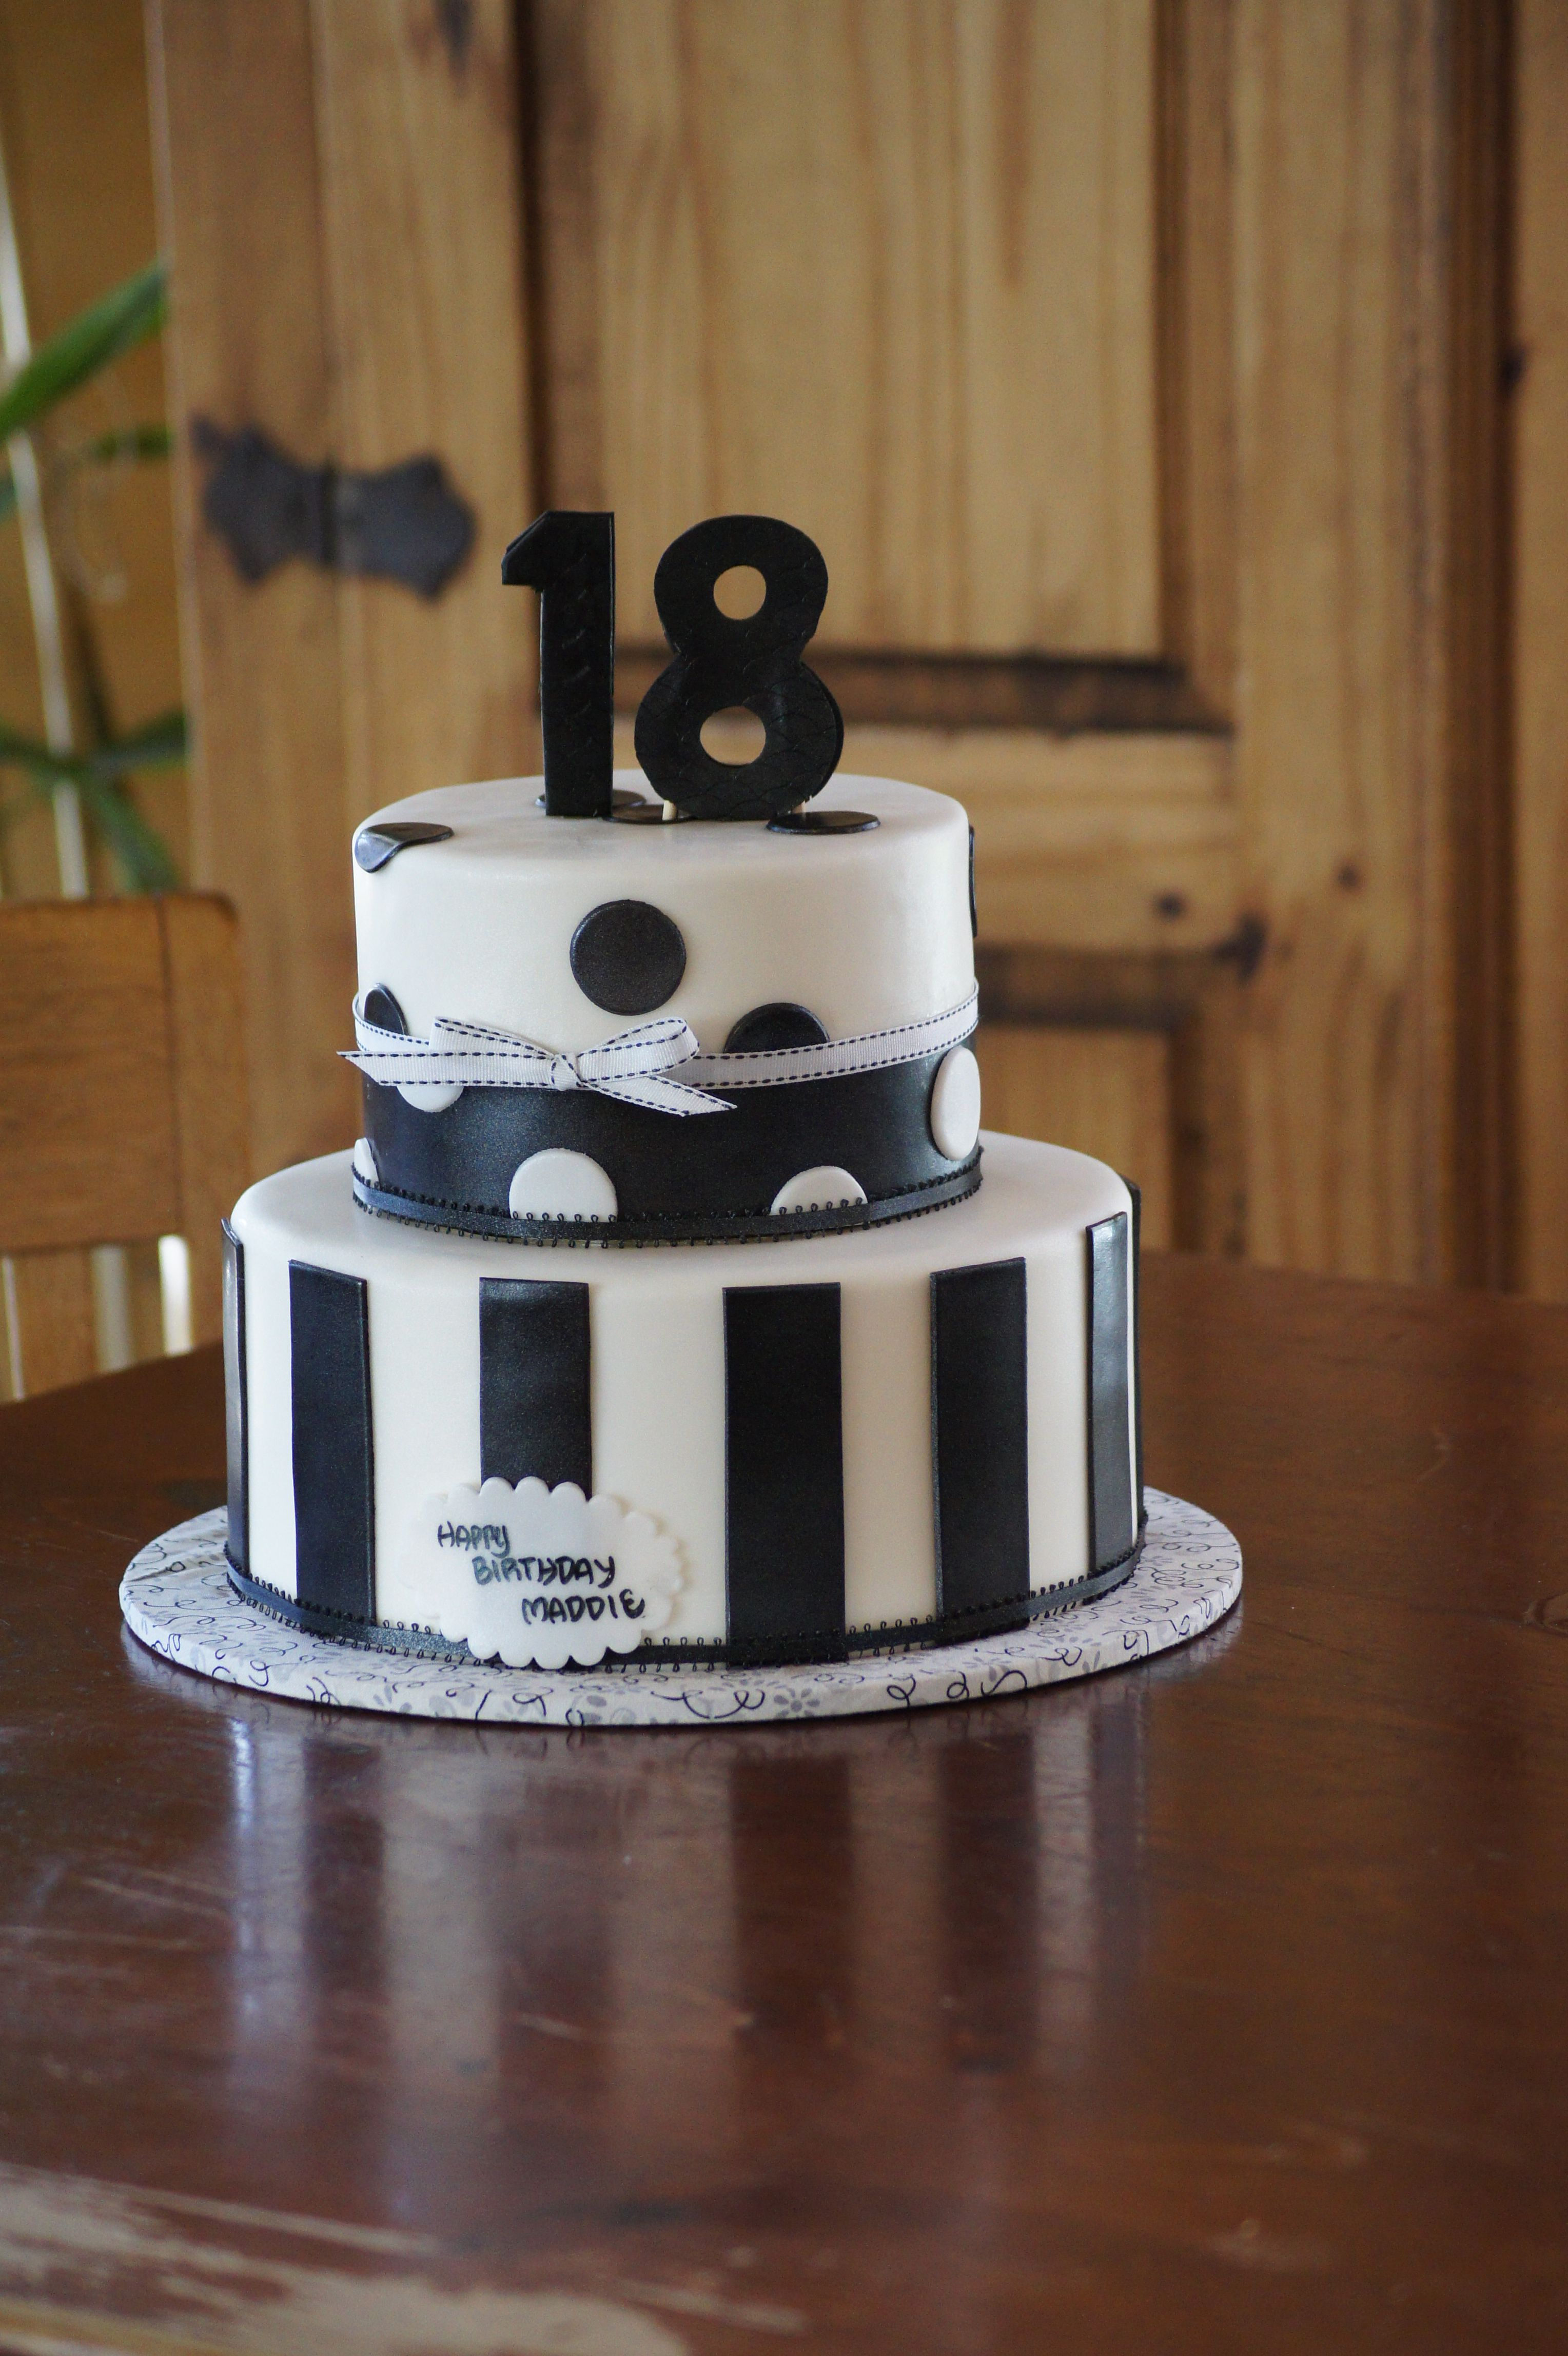 Tiered Black And White Birthday Cake With Polka Dots And